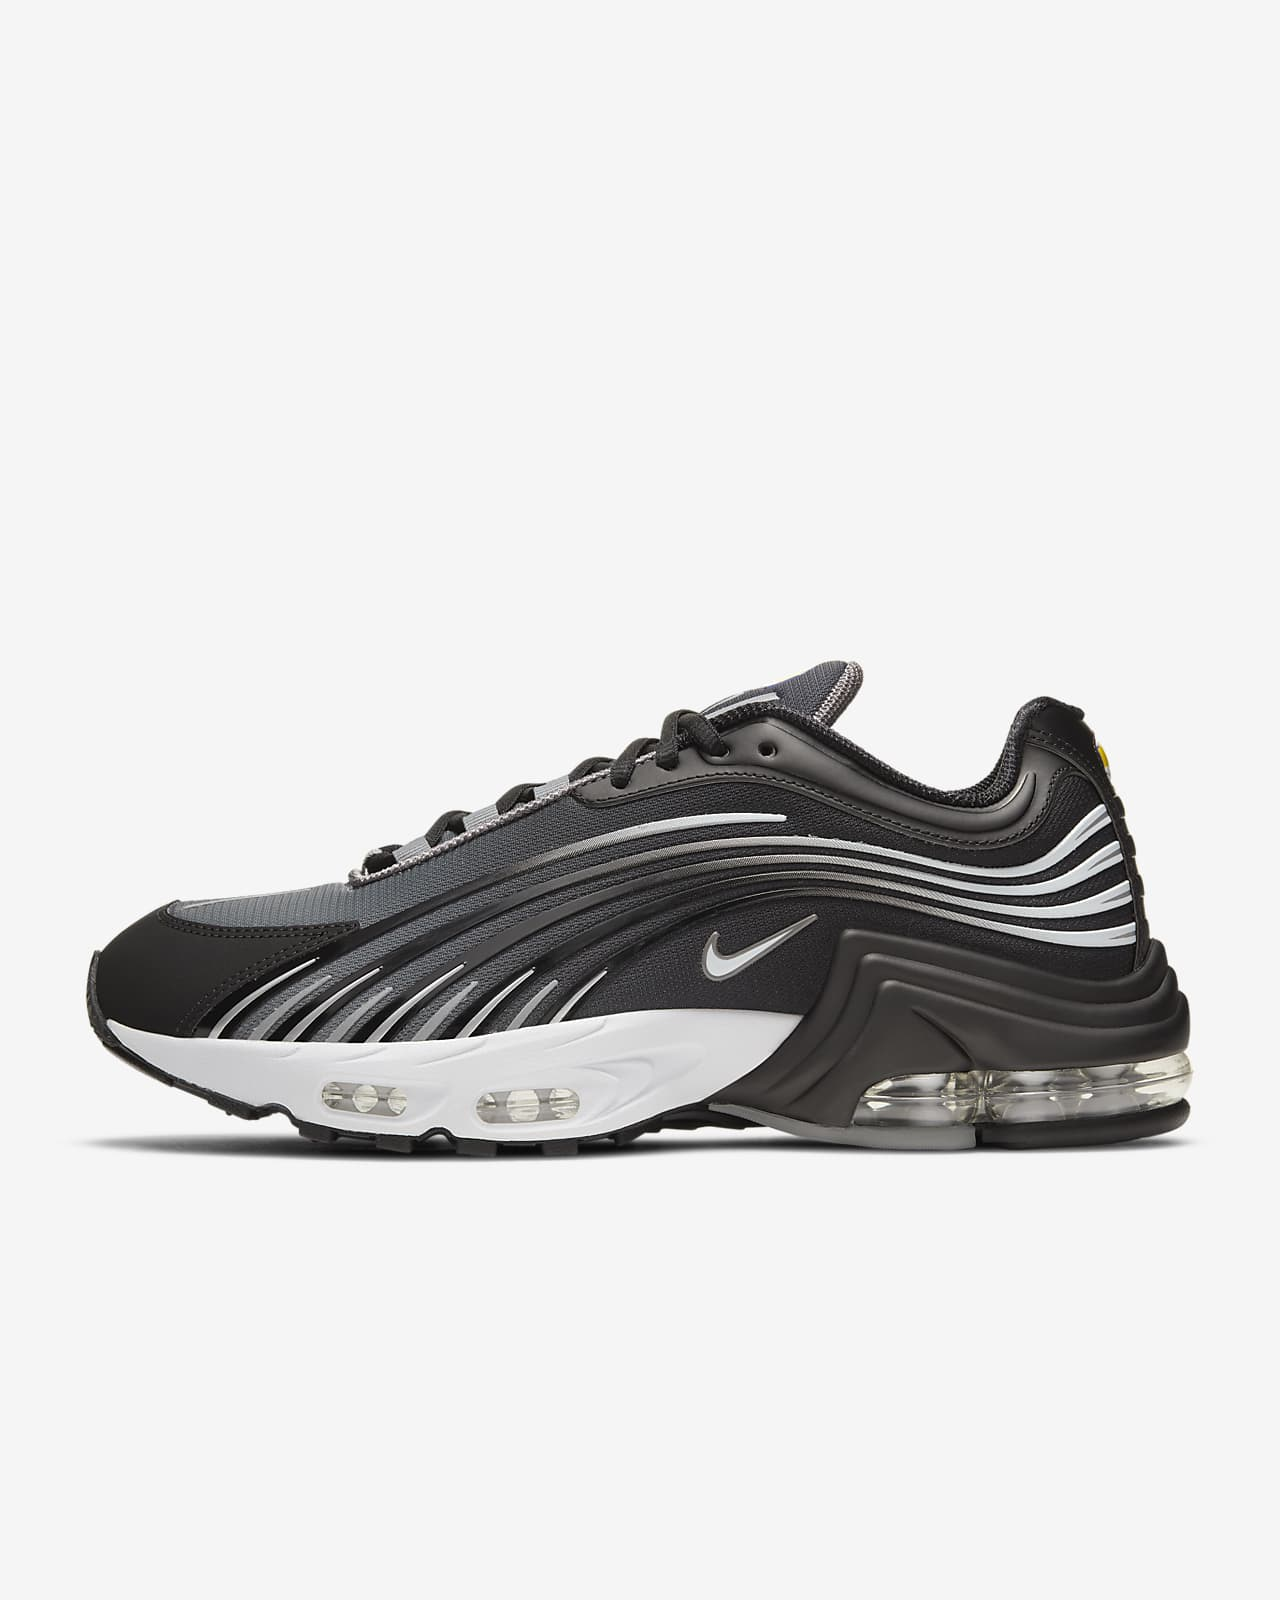 Nike Air Max Plus II férficipő